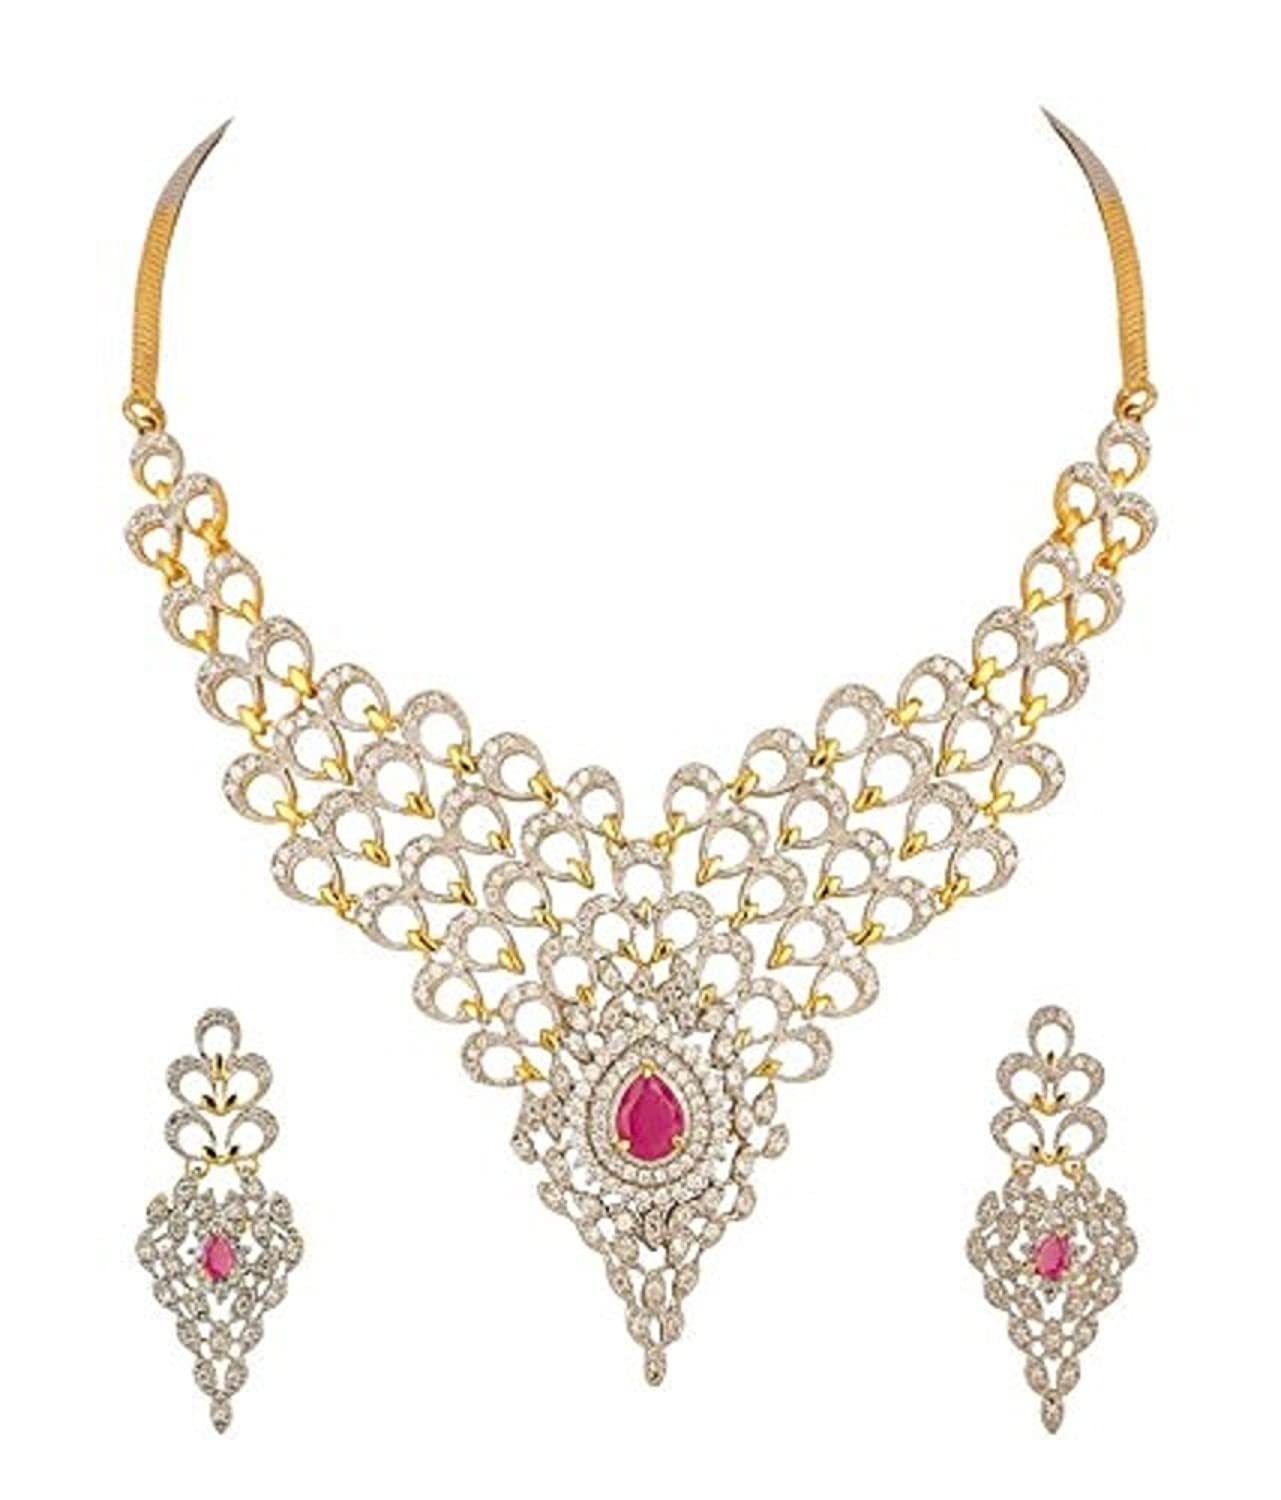 Buy YouBella Jewellery American Diamond Gold Plated Necklace Set ...